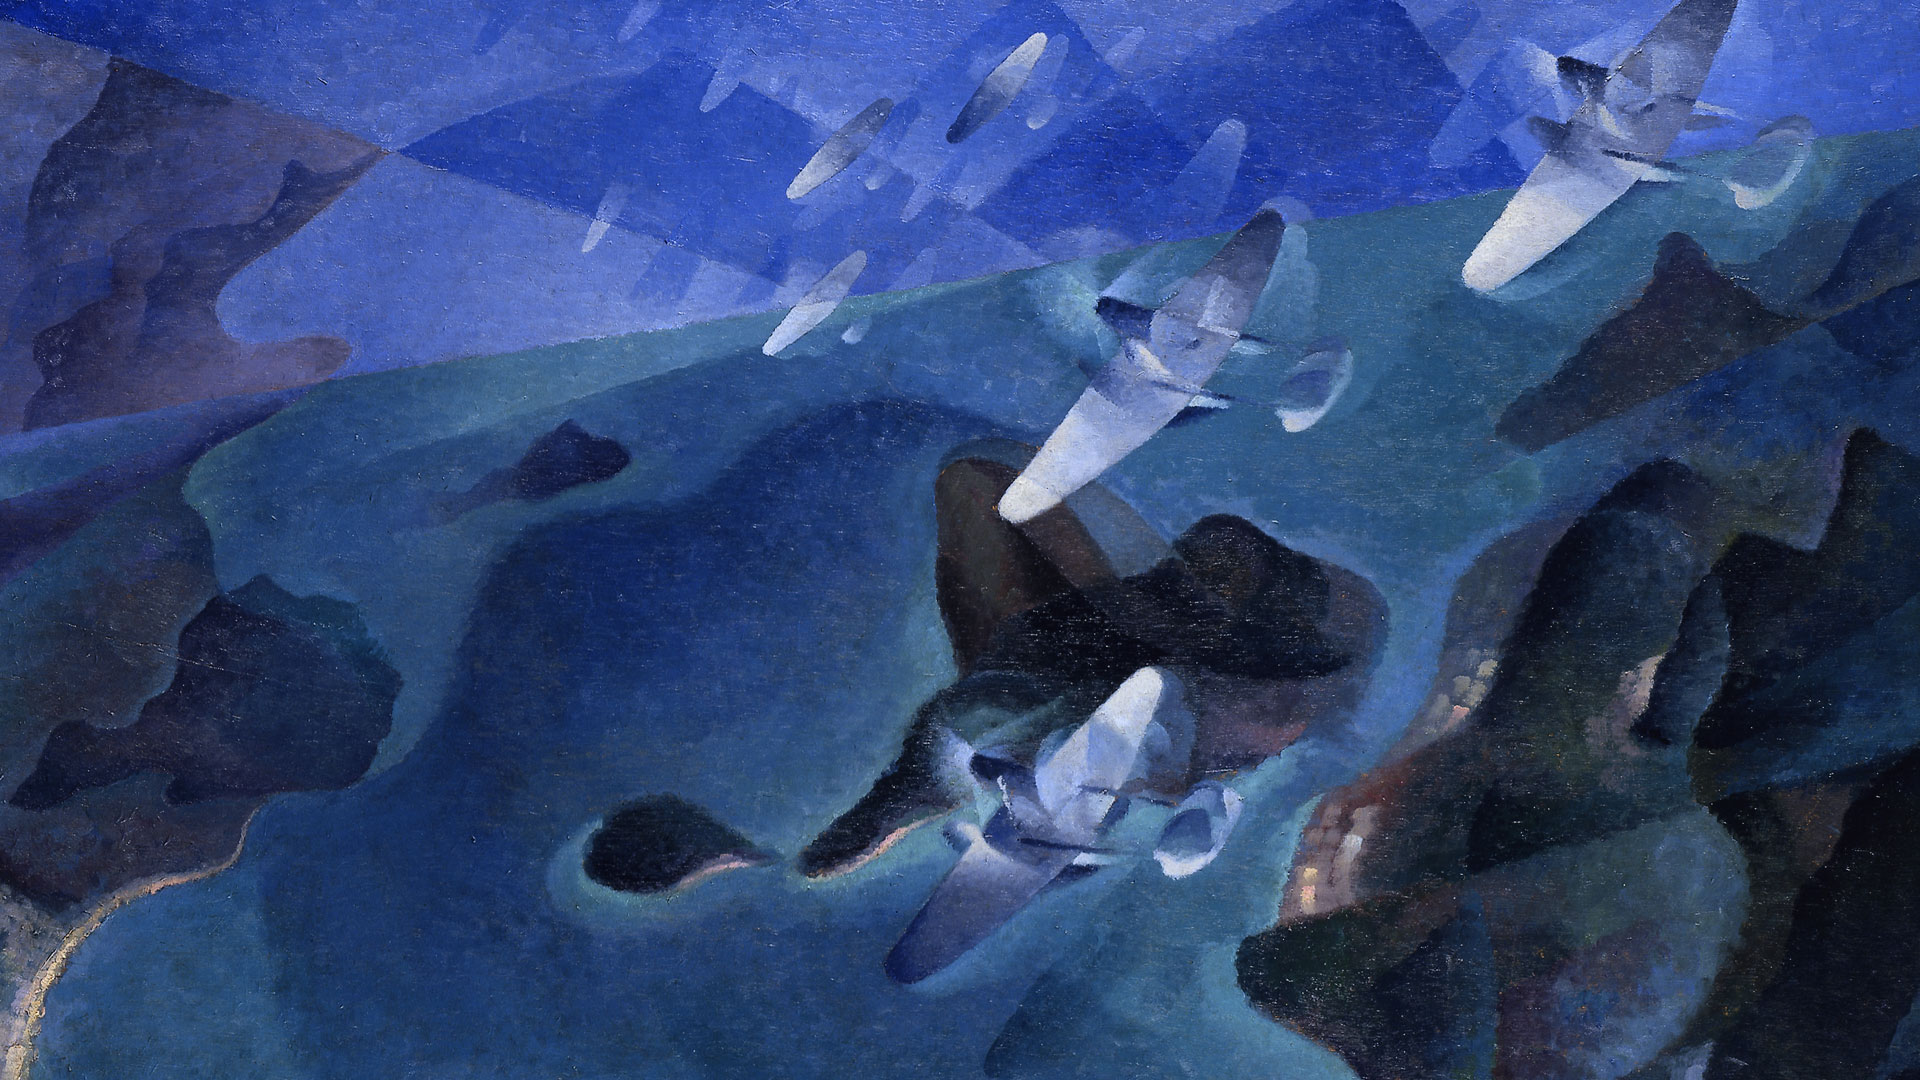 Futurist painting with soaring and circling airplanes